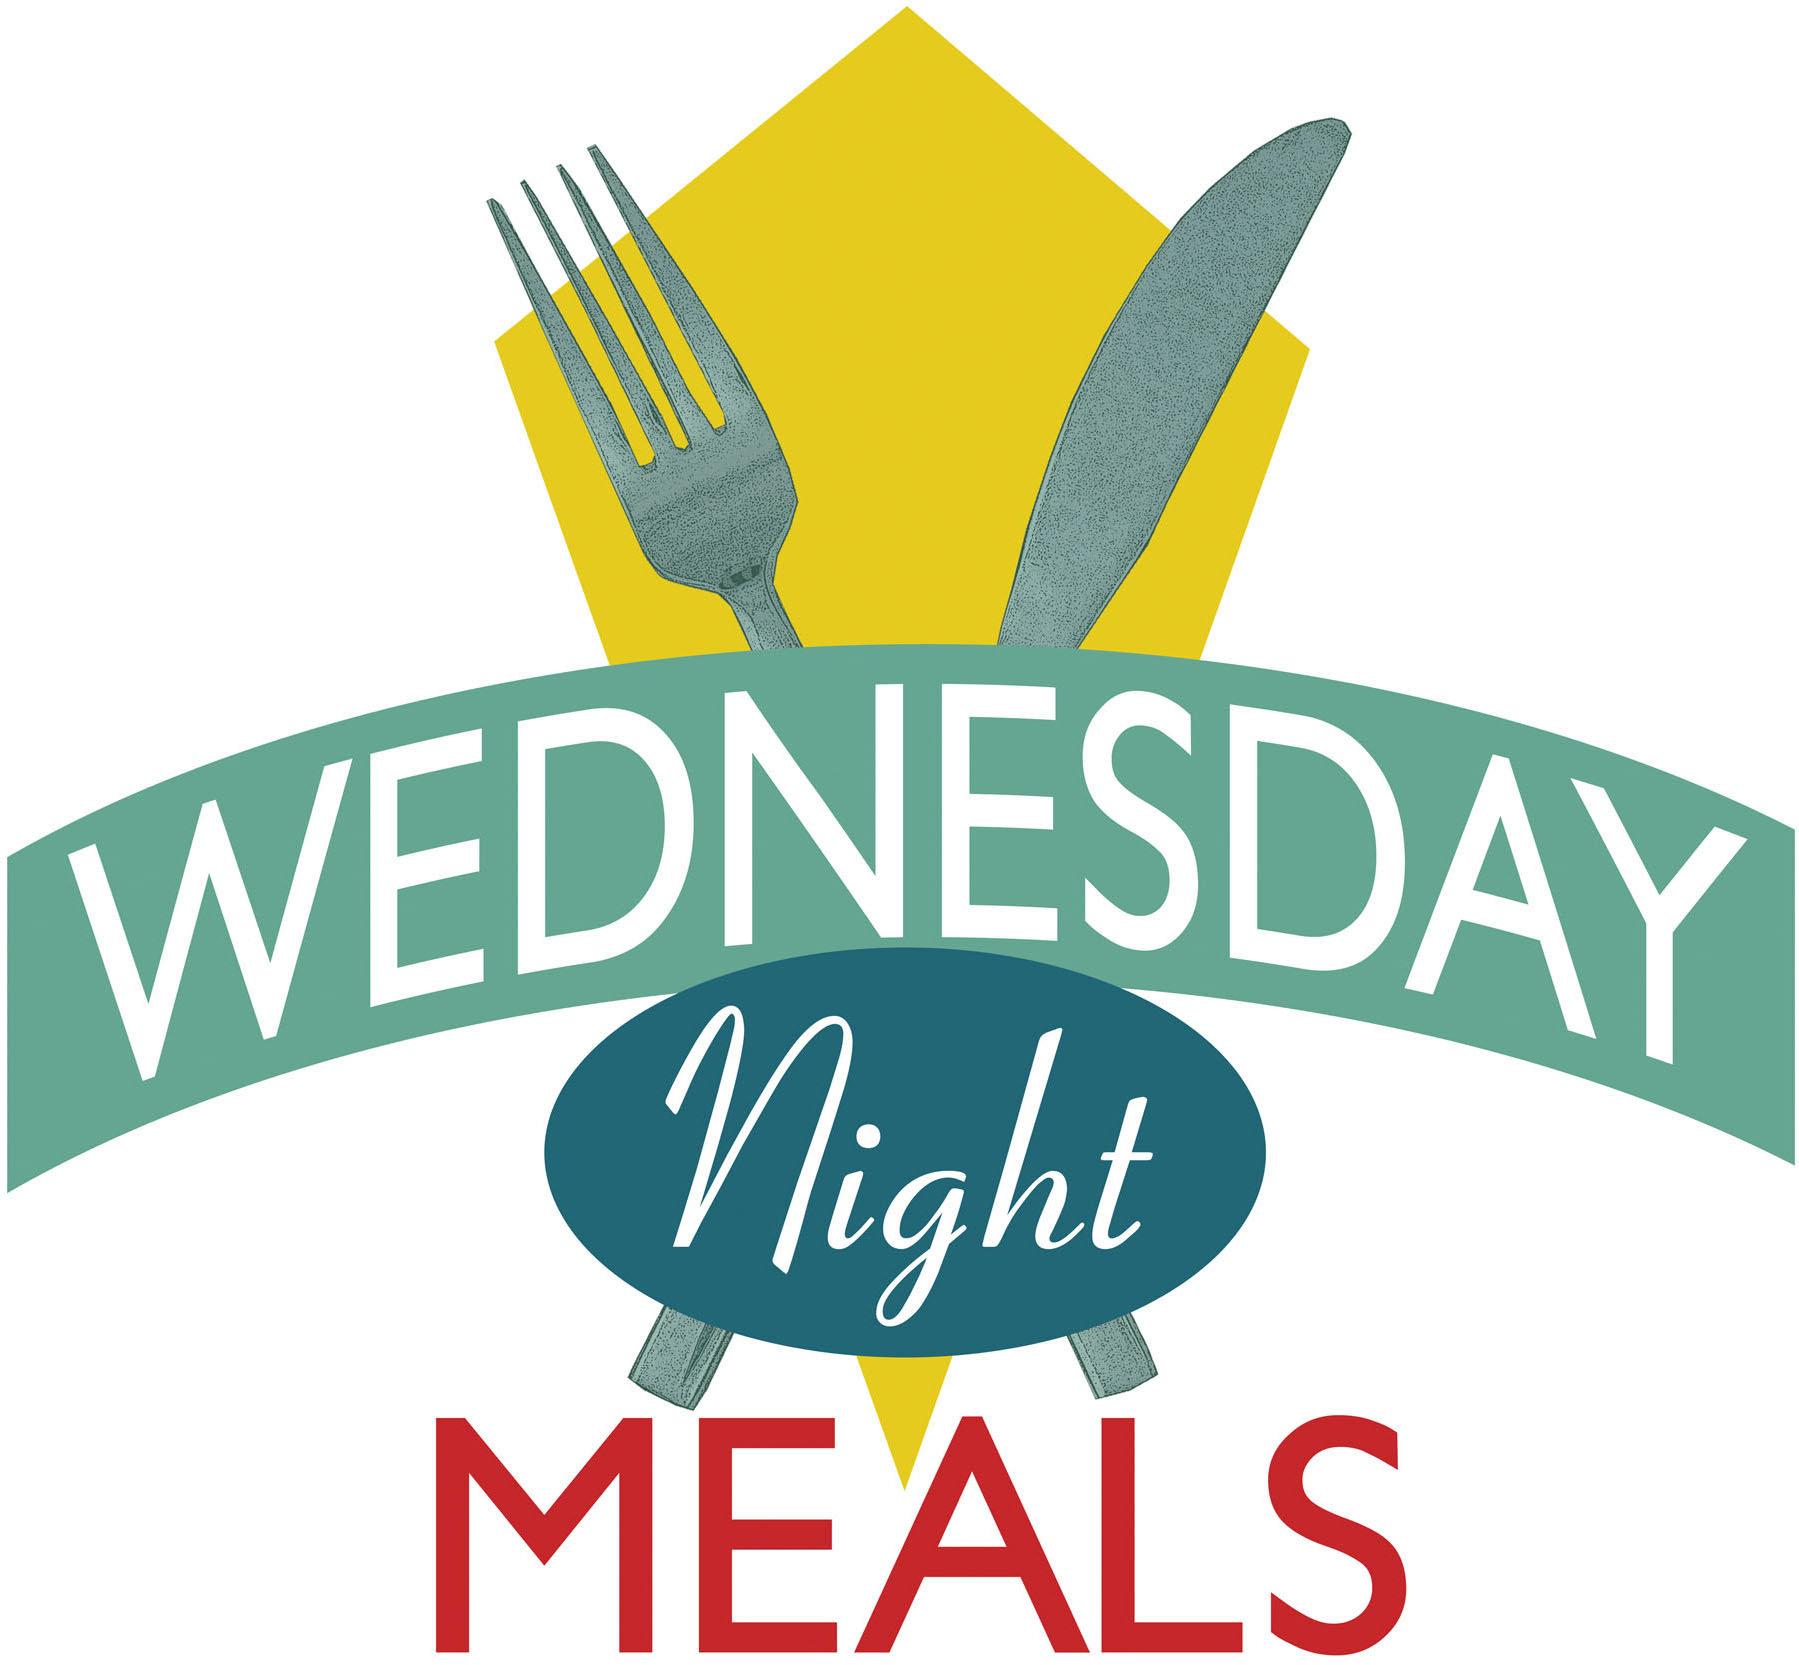 Free Fellowship Meal Cliparts, Download Free Clip Art, Free Clip Art.